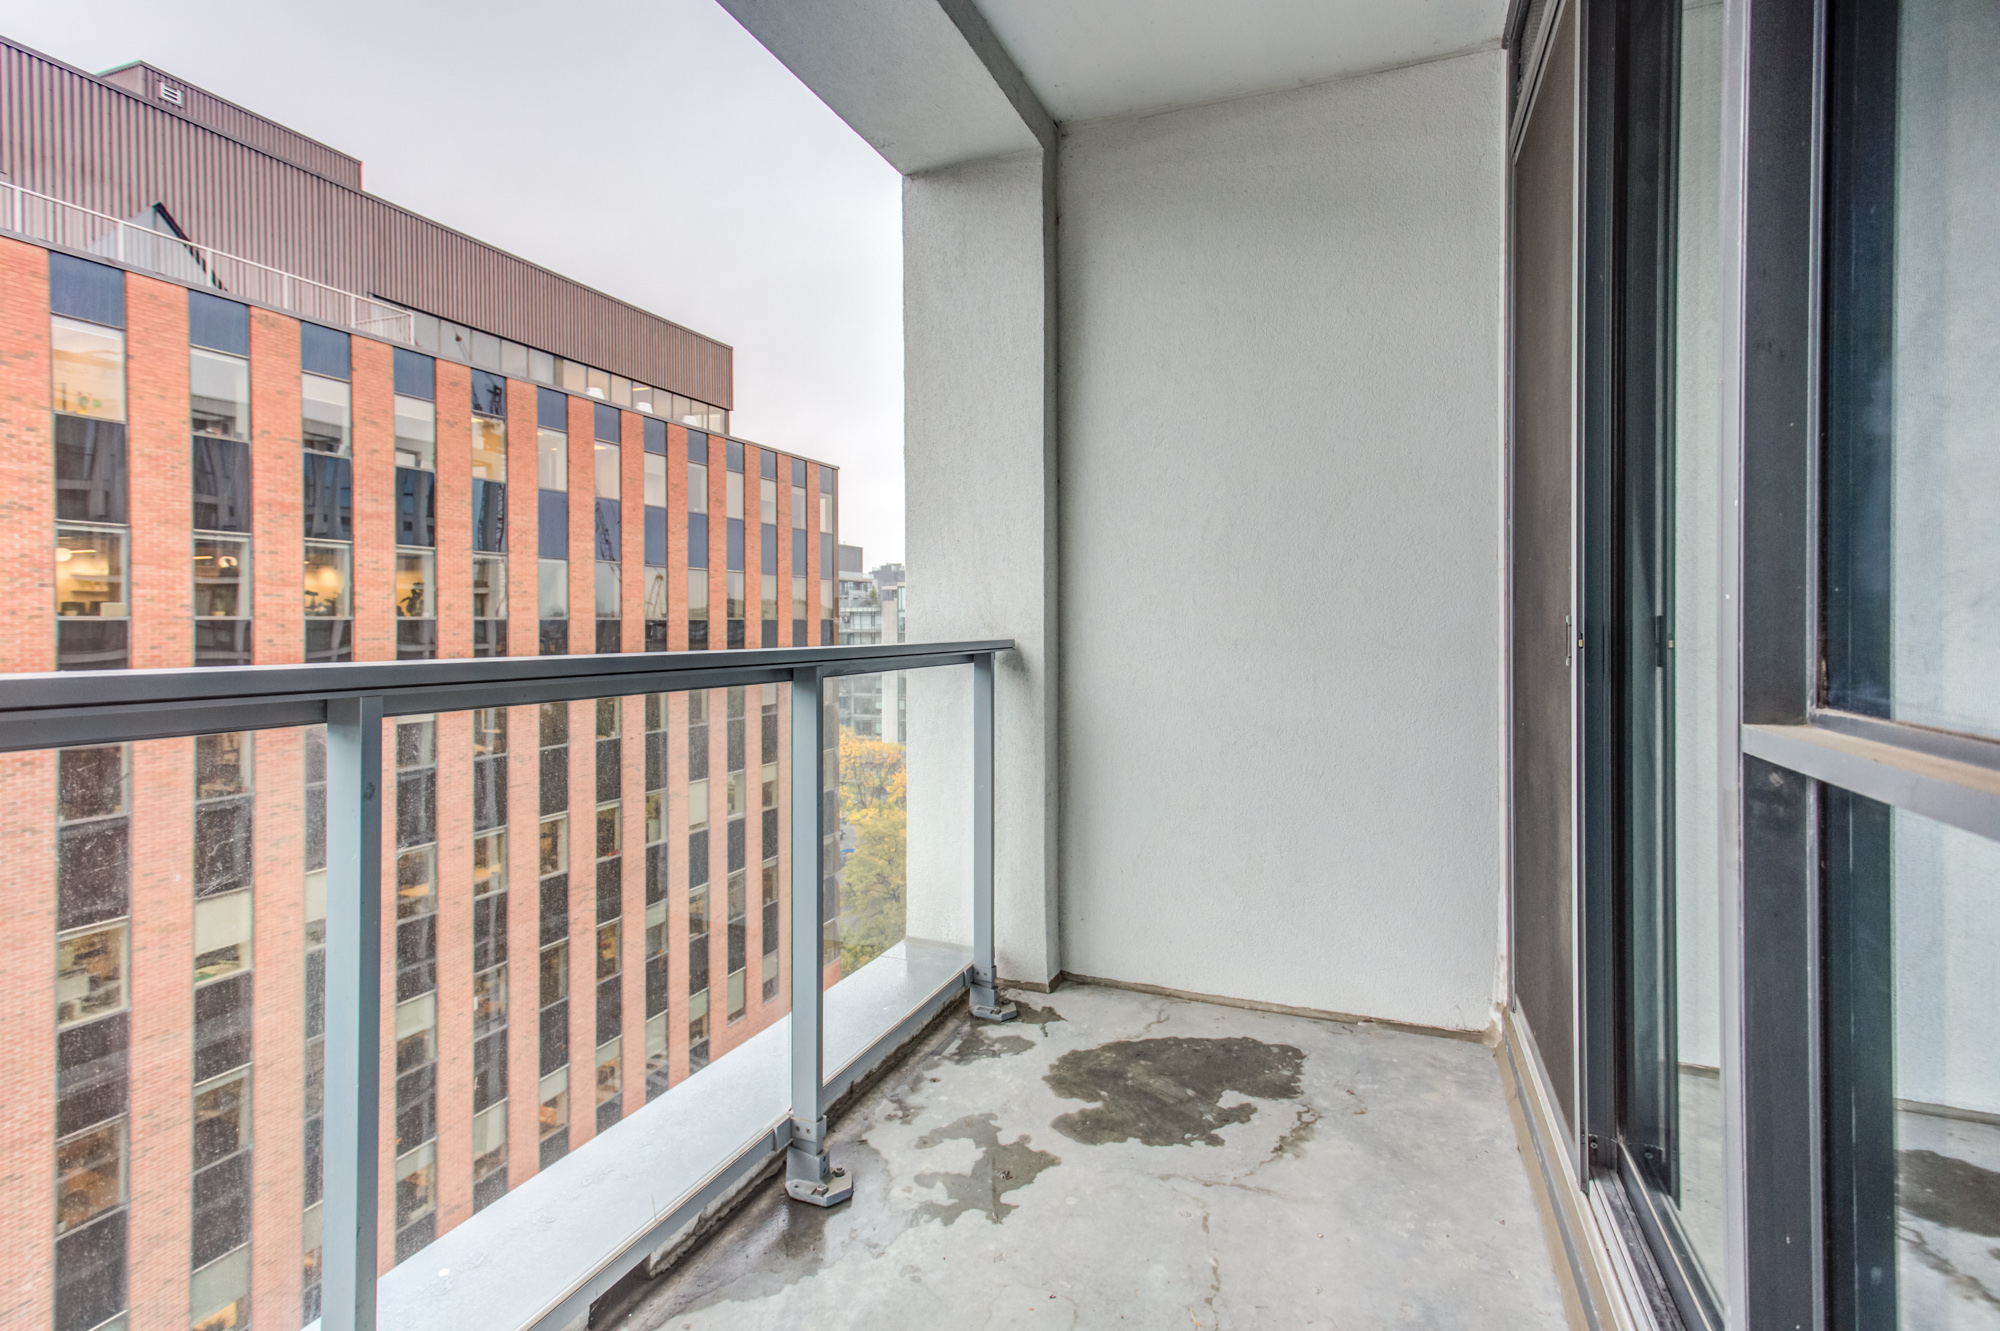 Balcony of 39 Brant St Unit 918, Brant Park Lofts, with glass-panels.